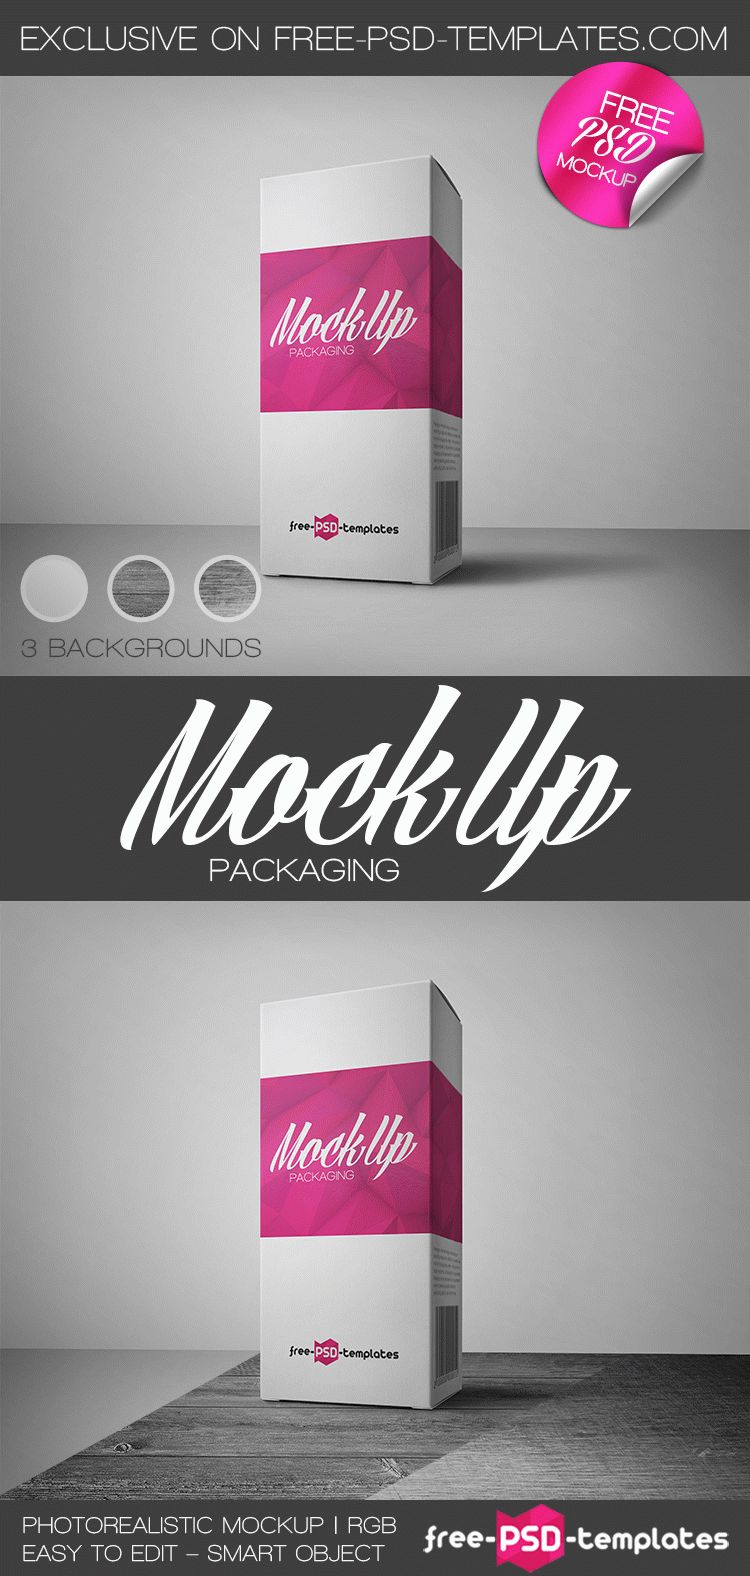 free mockup templates - free packaging mock up in psd free psd templates